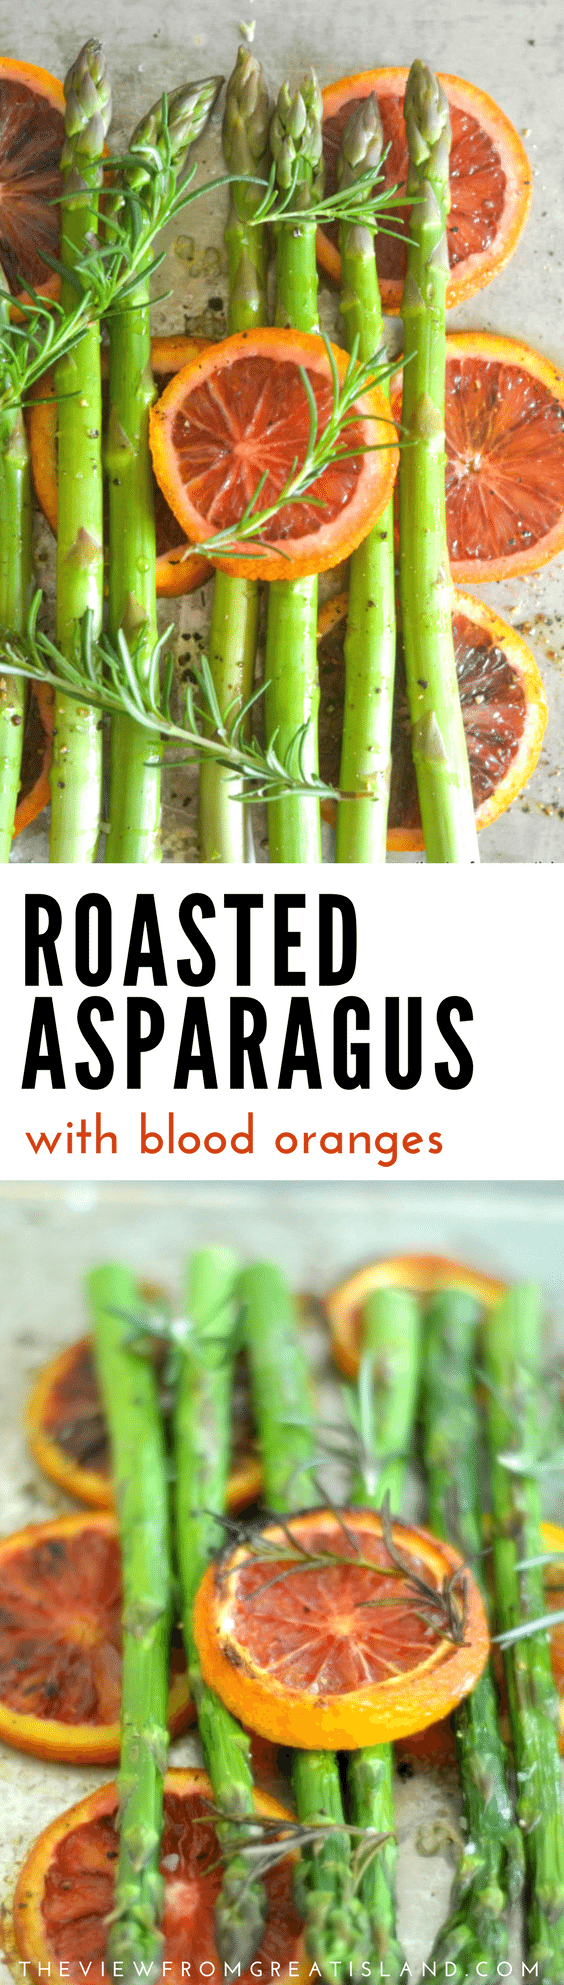 Asparagus roasted with blood oranges reflects a fleeting moment in time...the blood oranges are on their way out just as the asparagus are coming into season and the two cross paths for one brief moment. Healthy, simple, glorious.#asparagus #roastedasparagusrecipe #bloodoranges #bloodorangerecipe #paleo #vegan #vegetarian #vegetables #springvegetables #citrus #healthyrecipe #sidedish